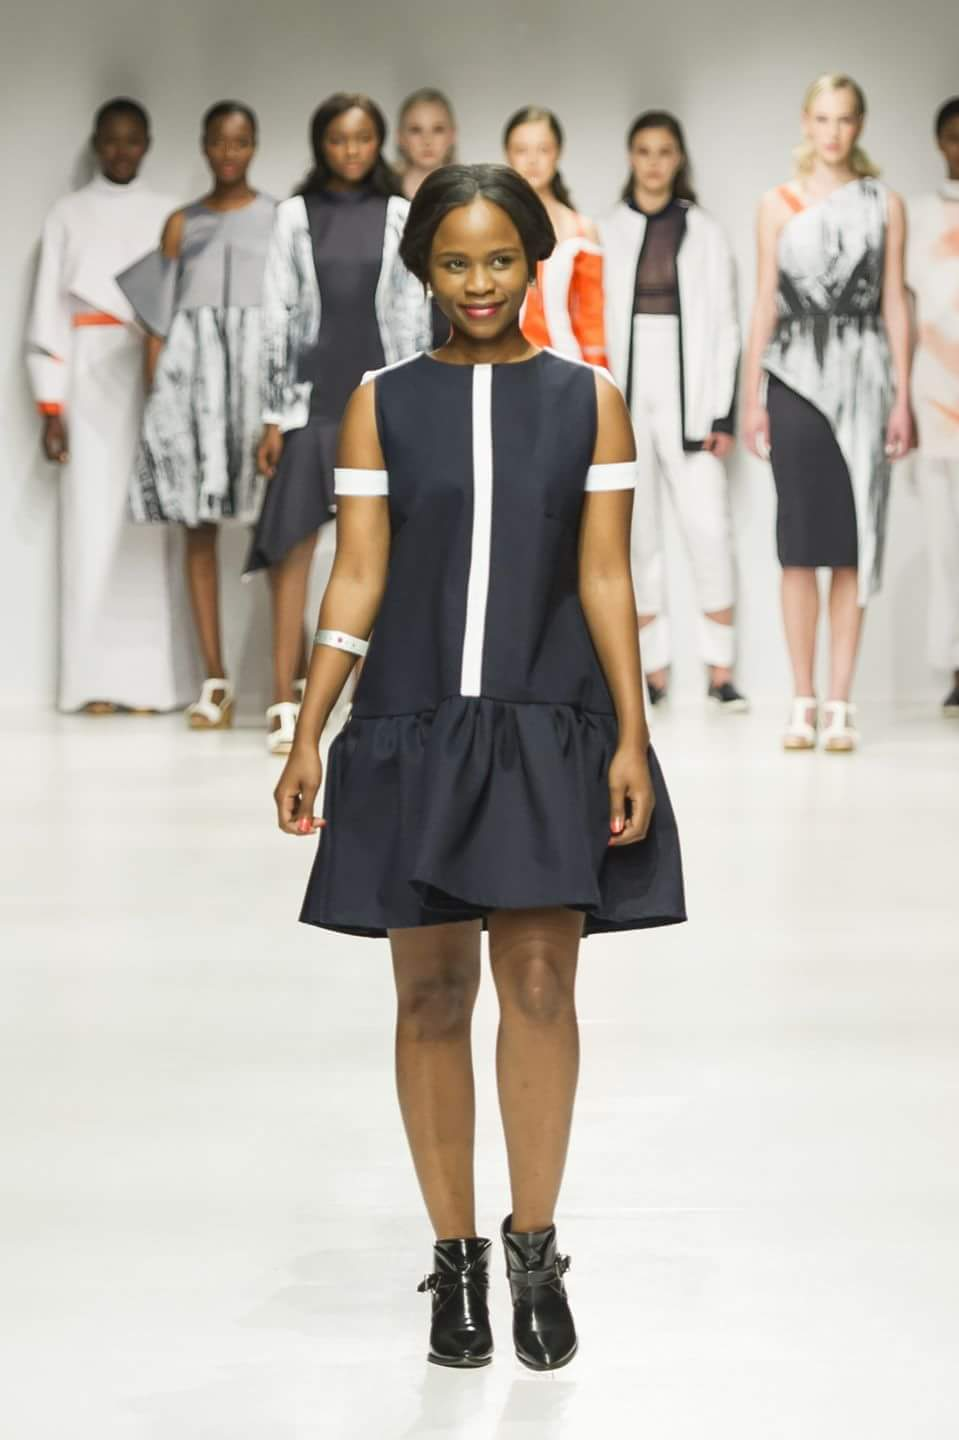 Five Minutes with Project Runway South Africa's Kentse Masilo